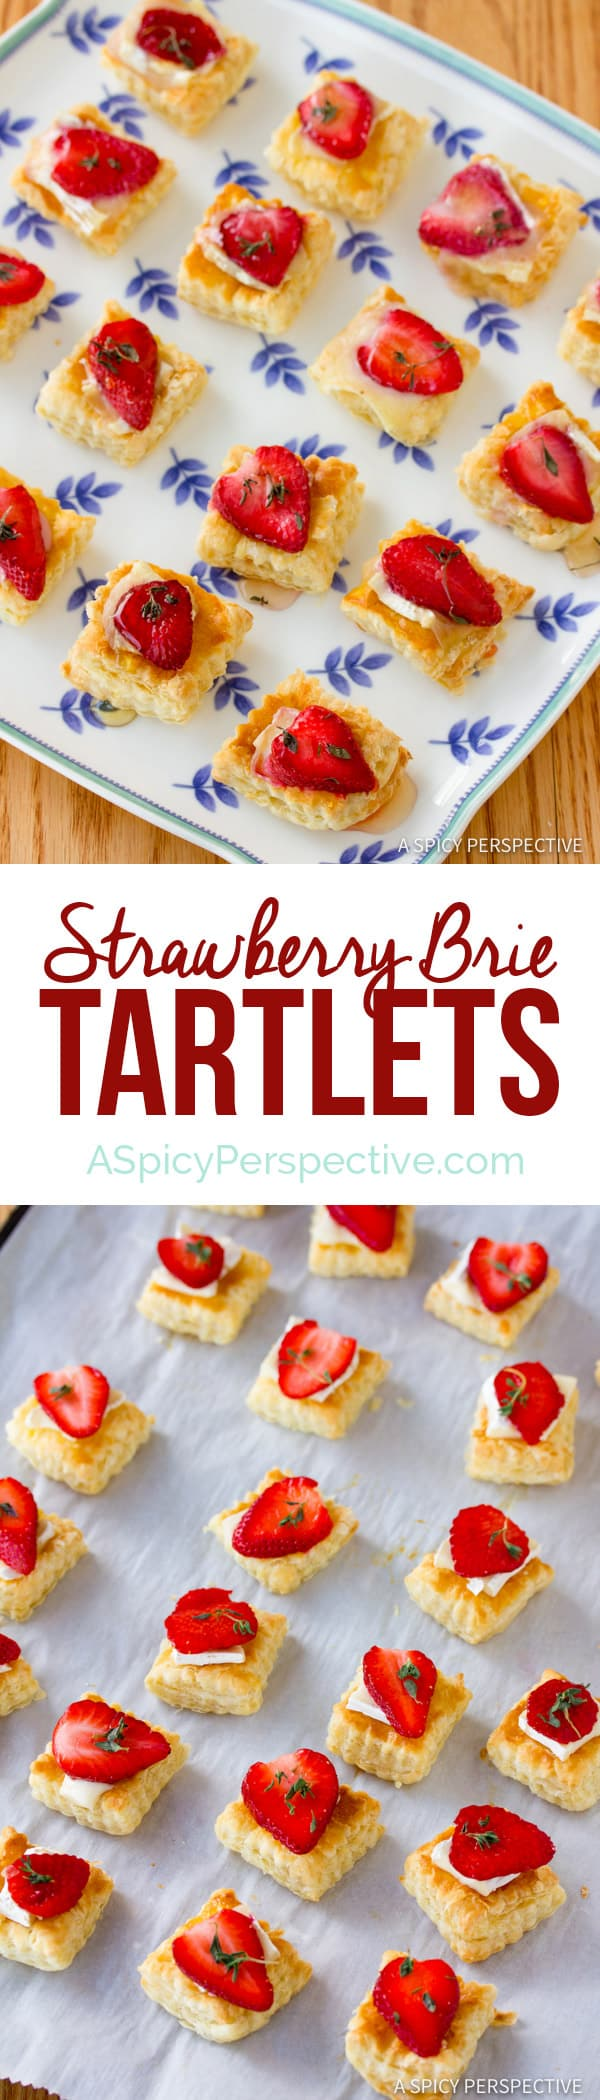 Easy Strawberry Brie Tartlets Recipe | ASpicyPerspective.com